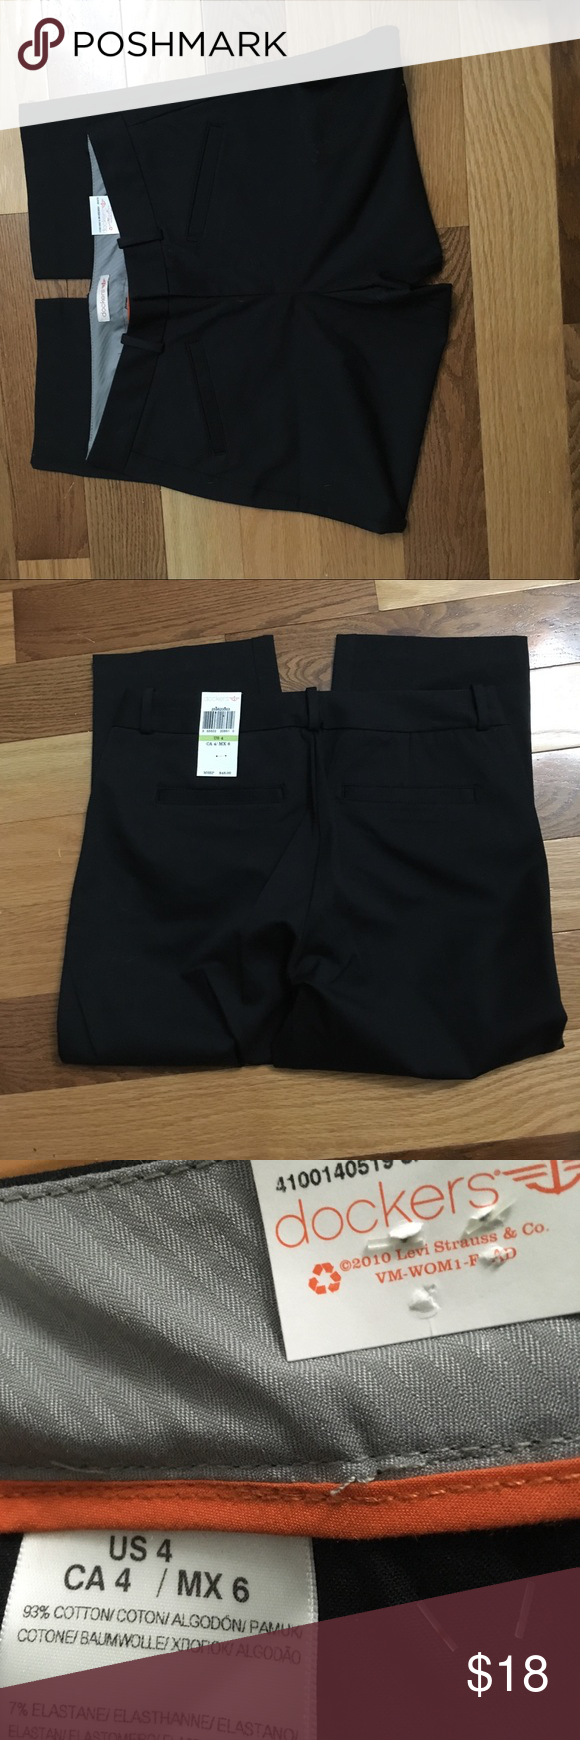 """NWT Dockers Sz 4 Waist 30."""" Hips 35."""" Rise 9.5. Inseam 20."""" Two back and two front pockets. NWT firm price unless bundling. Dockers Pants Capris"""